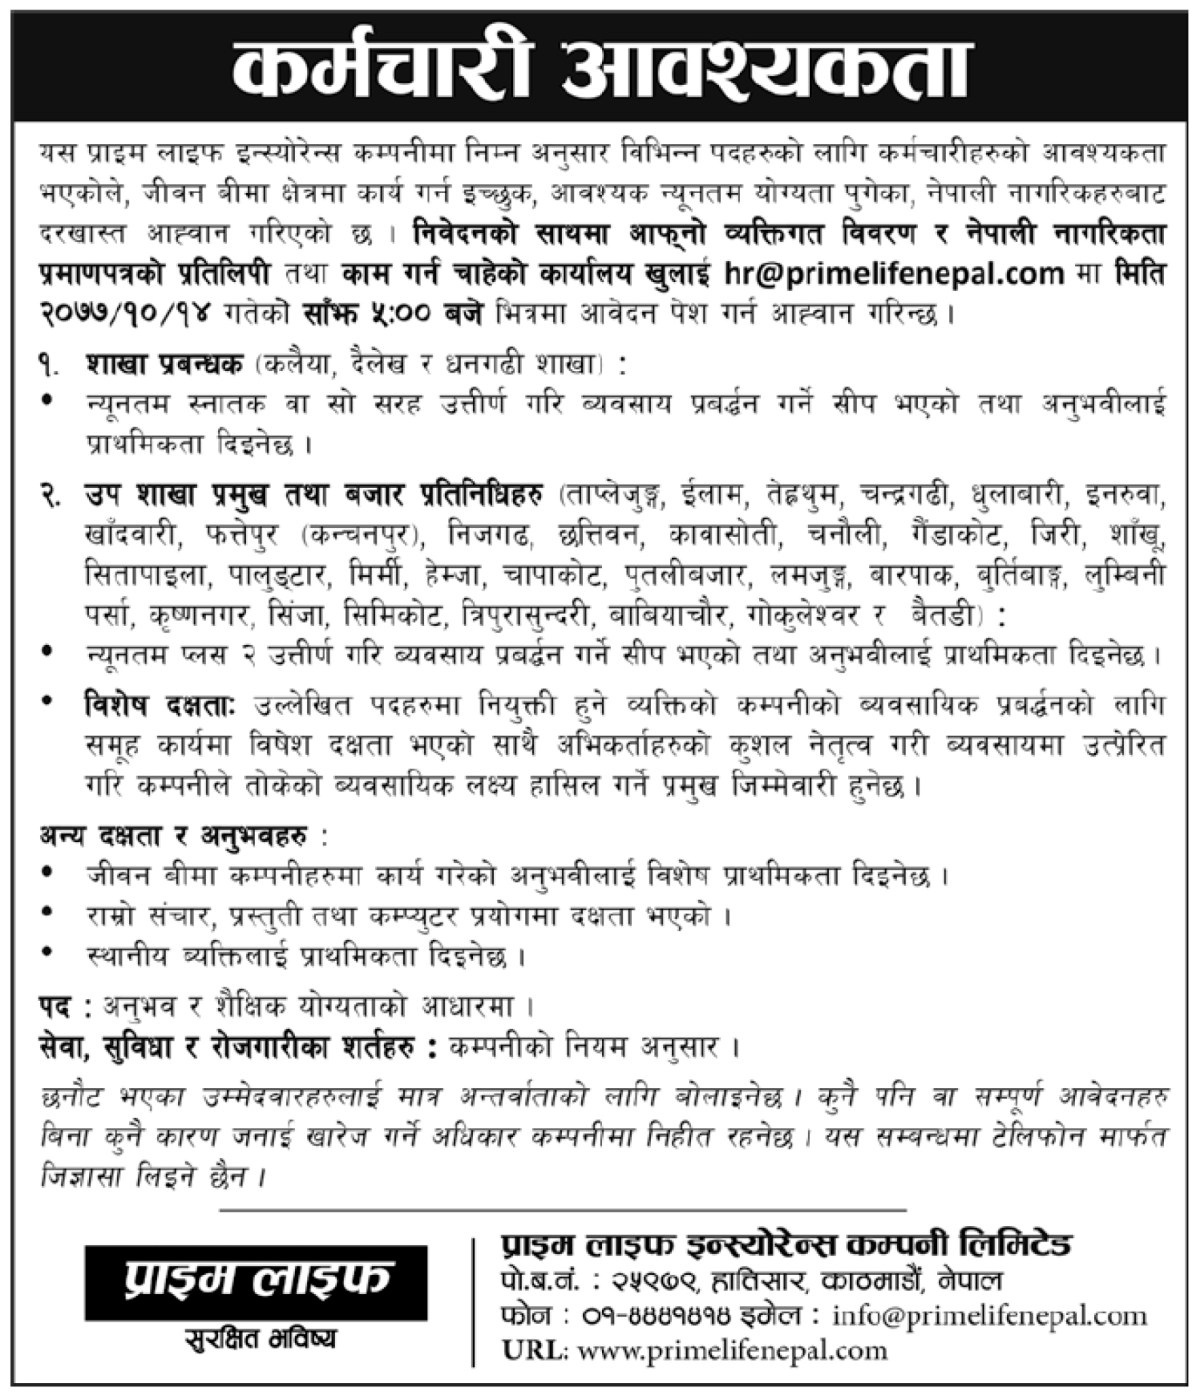 Prime Life Insurance Company Limited, Job Opportunity